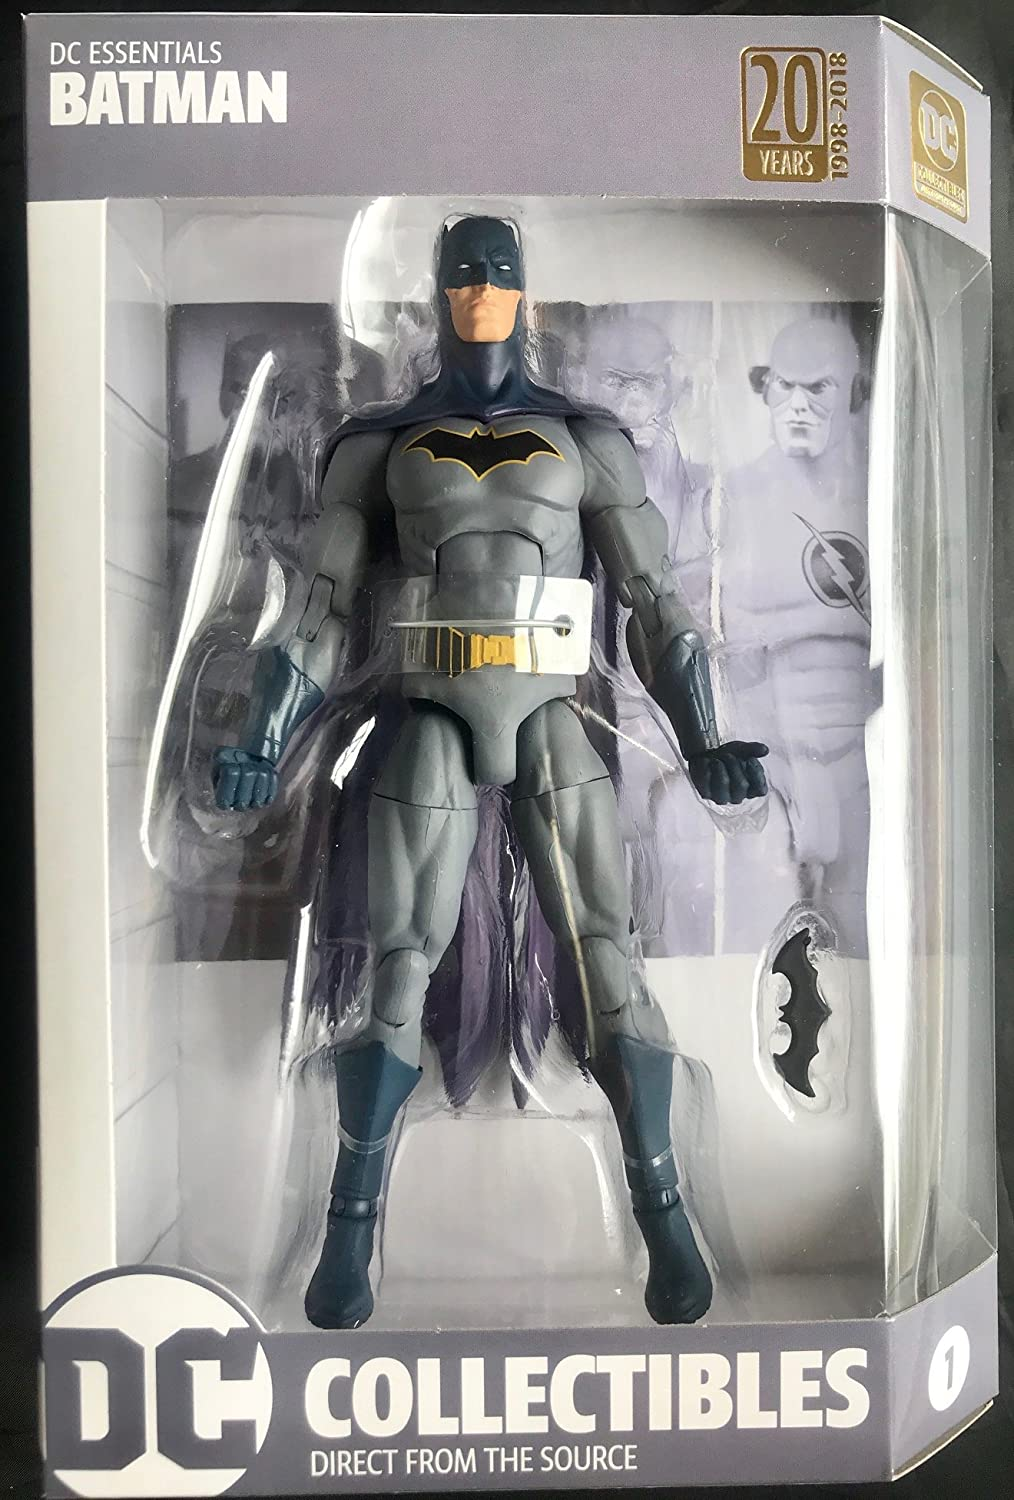 "DC Collectibles DC Essentials Batgirl Batman Action Figure 6/"" USA IN STOCK"